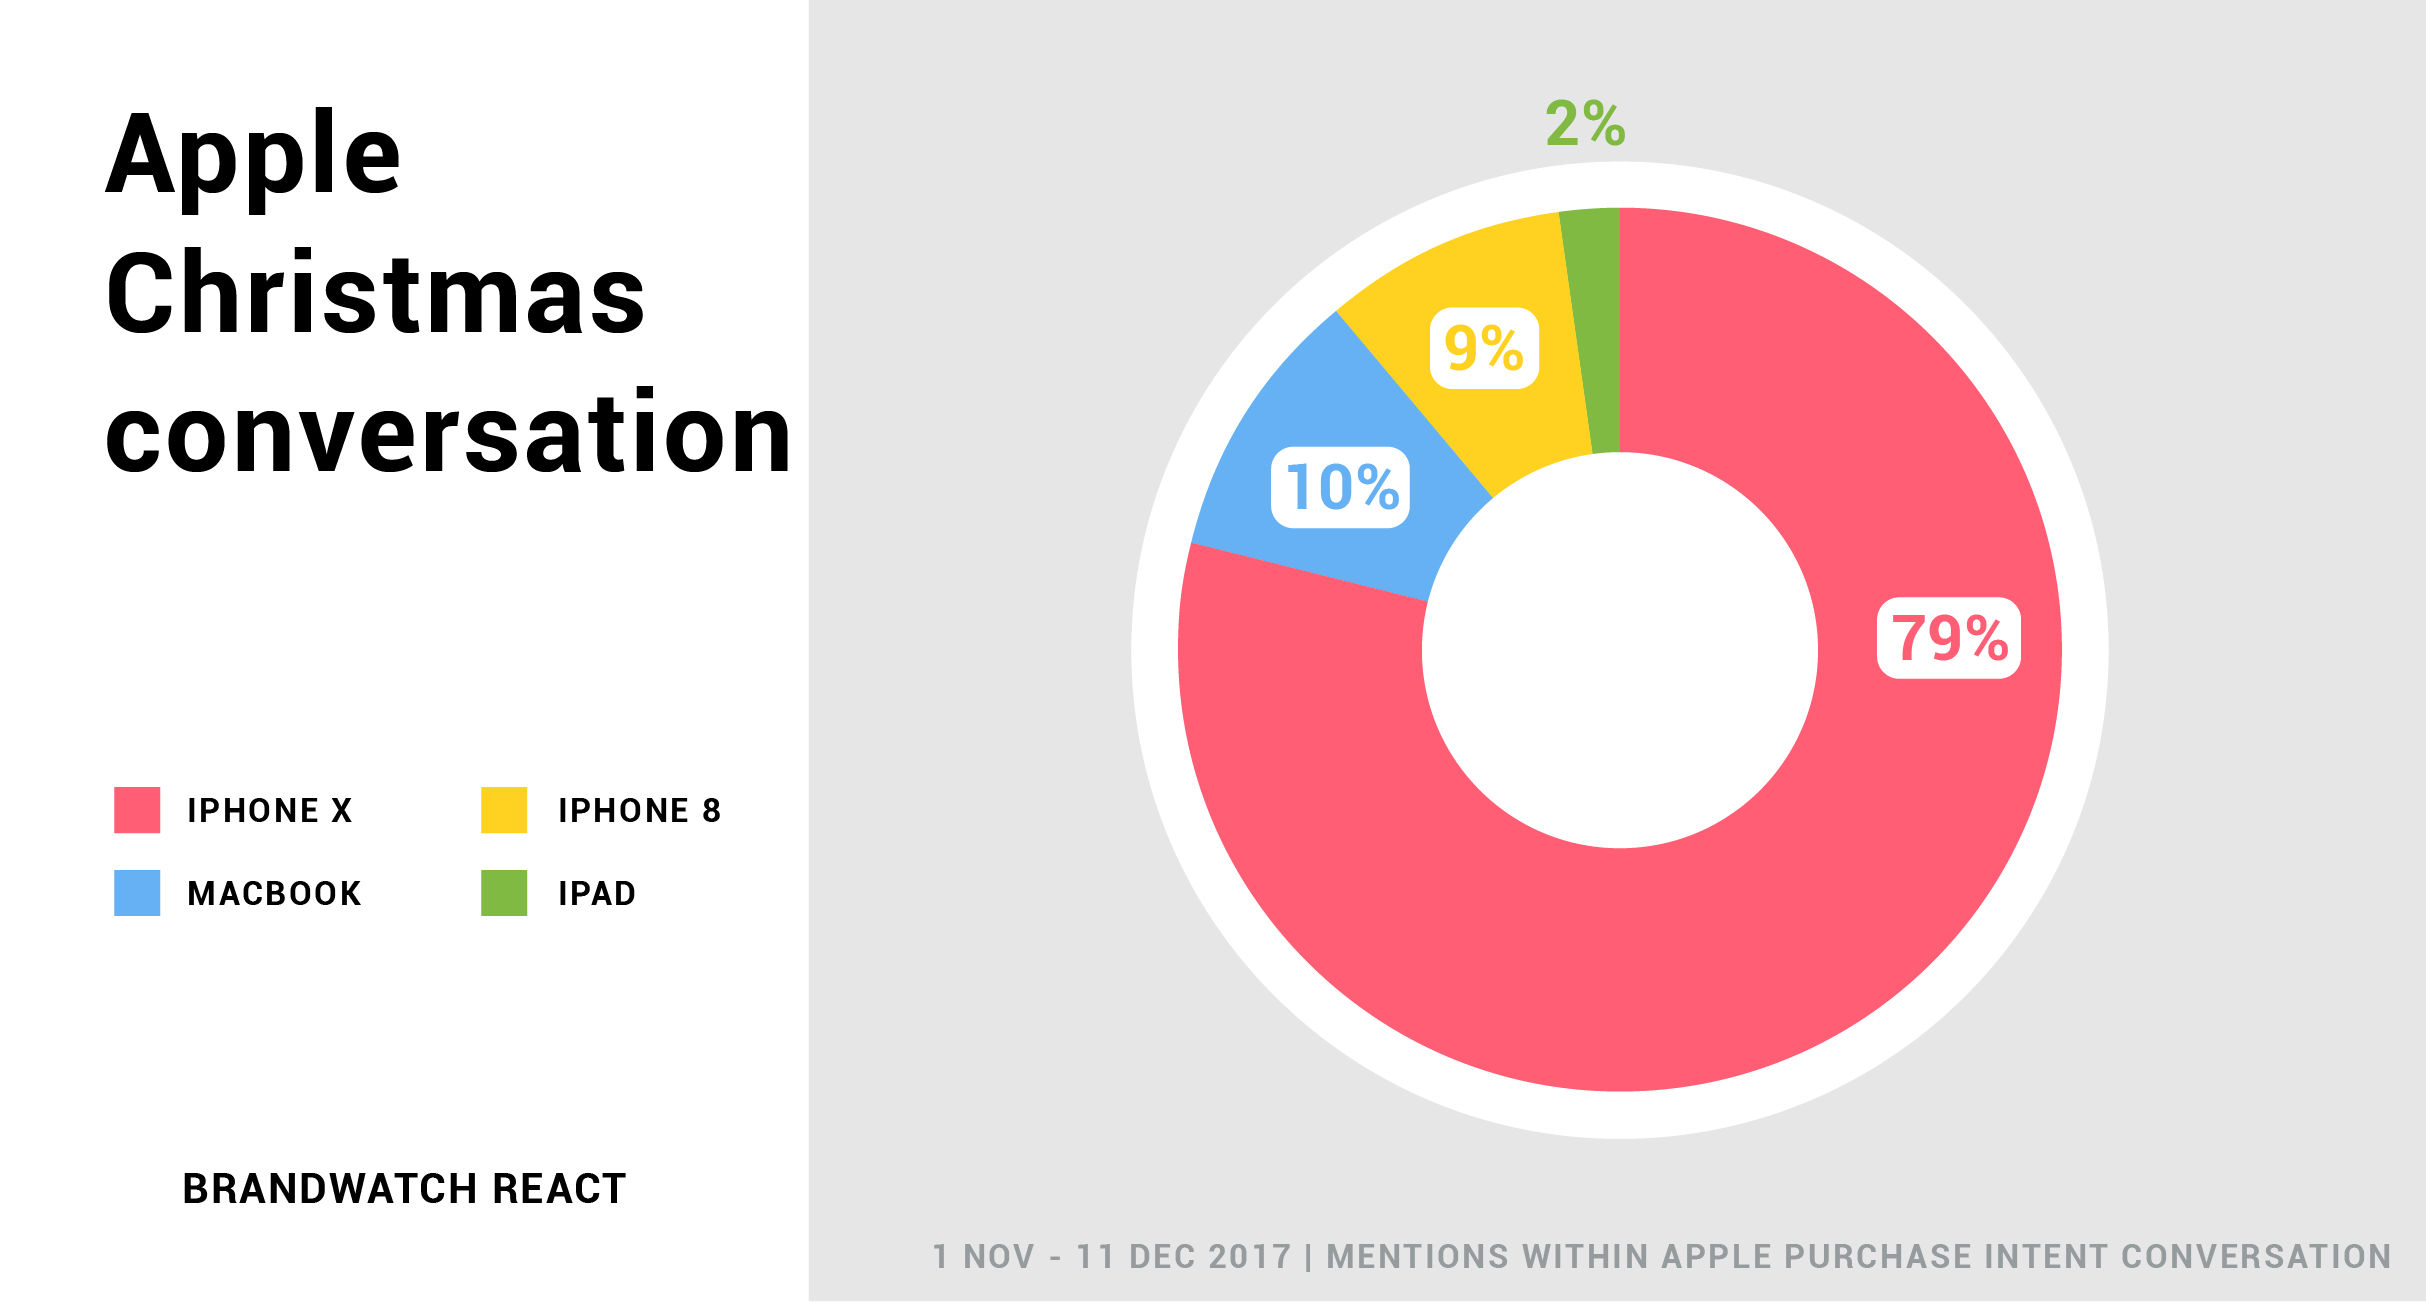 What Do People Want For Christmas? Apple products - the iPhone X is the most discussed product, with Macbooks coming second, iphone 8 third and iPad last